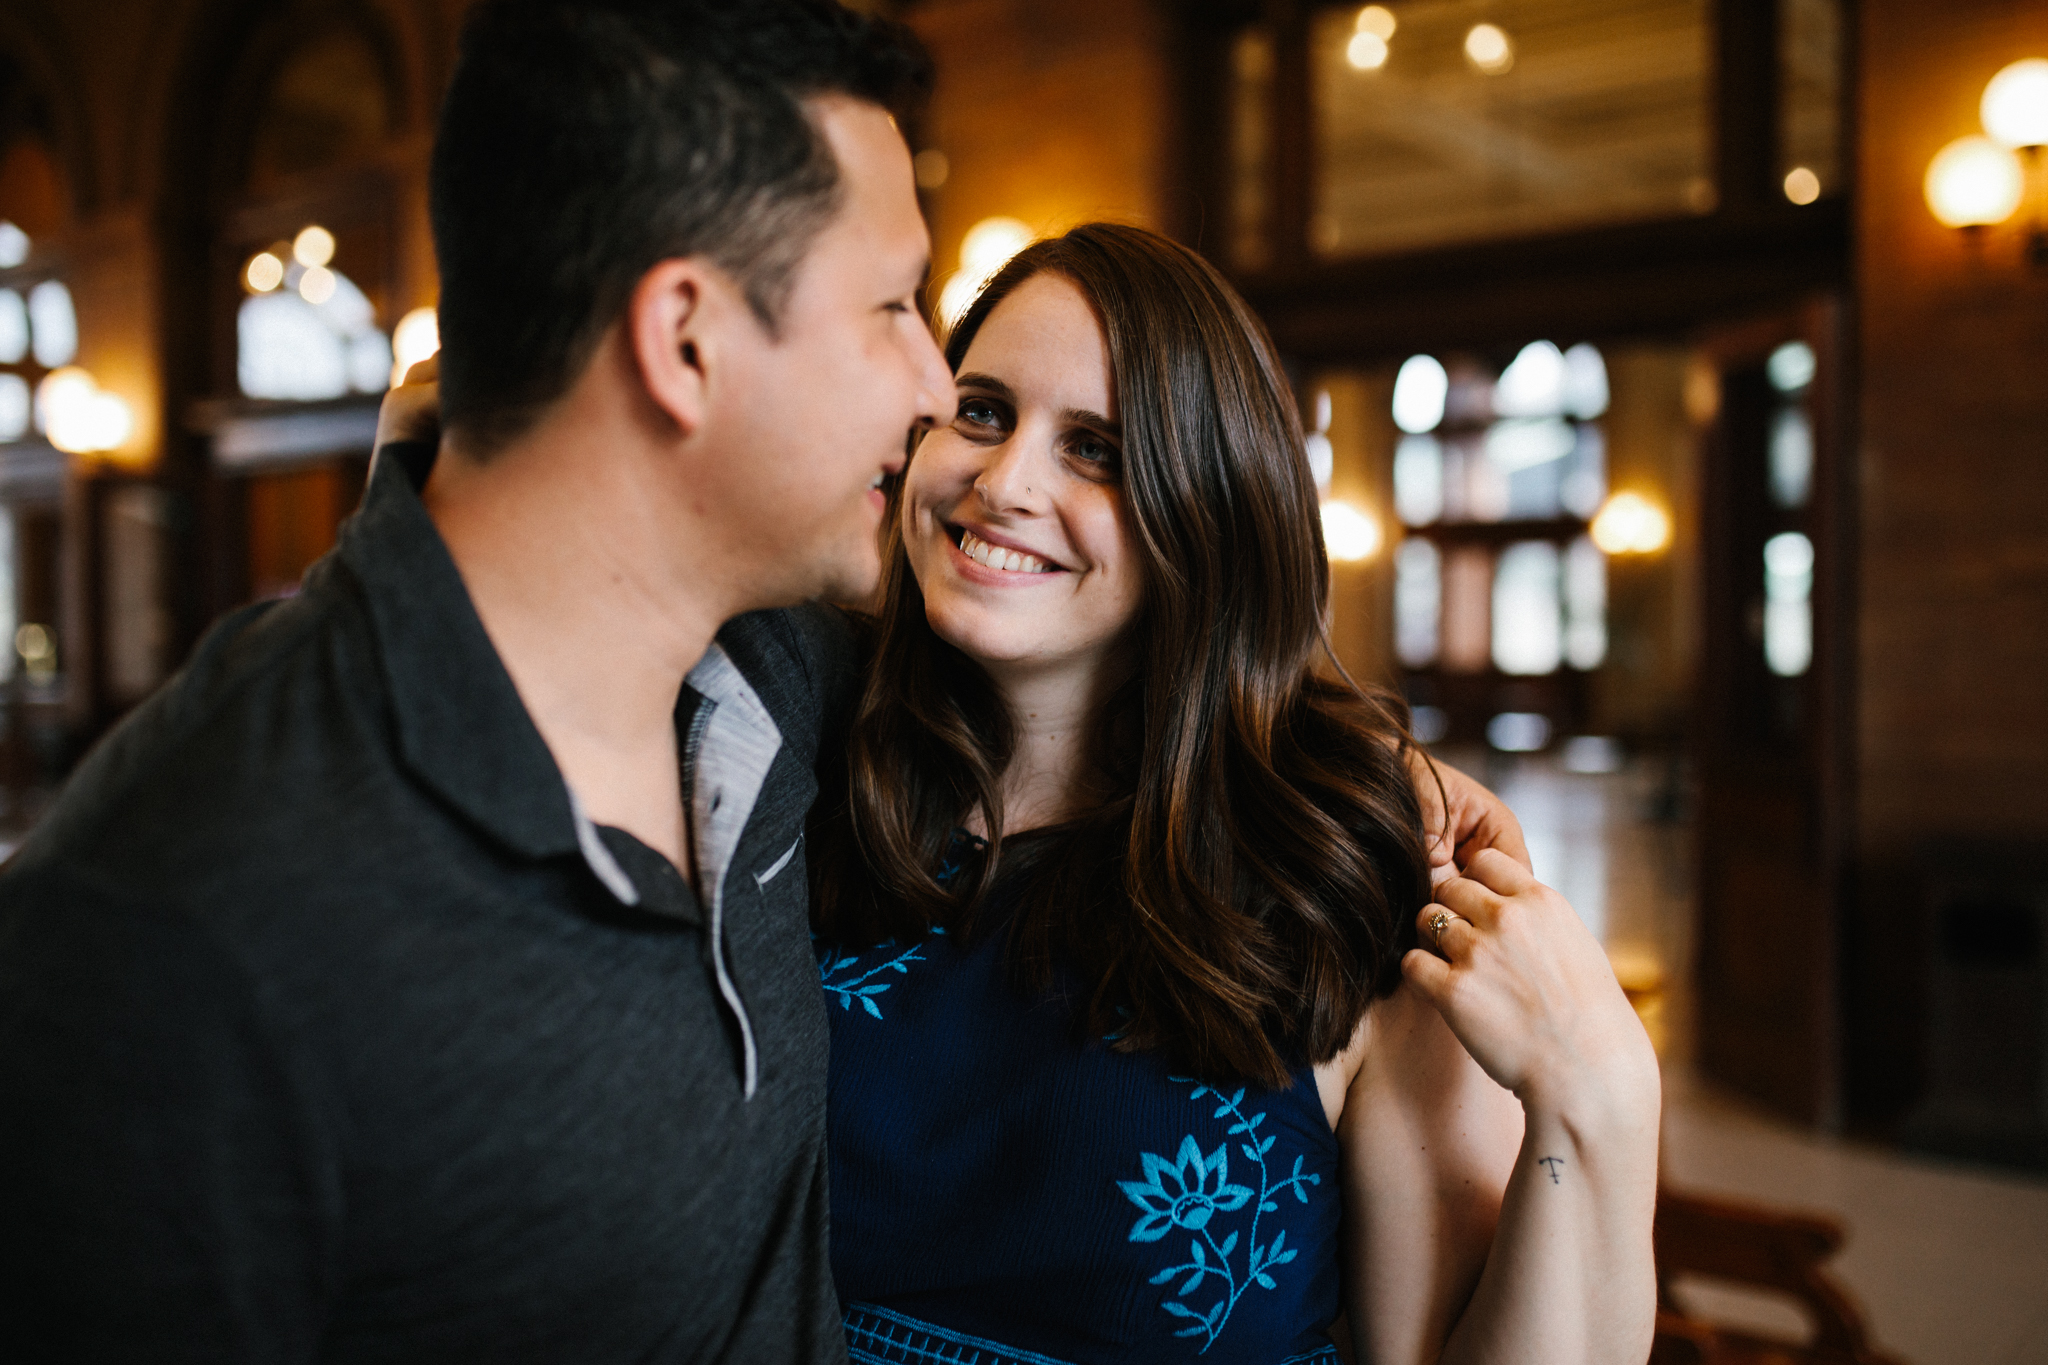 rachel_alex_richmond_engagement_session_mainstreetstation_rebeccaburtphotography-7.jpg